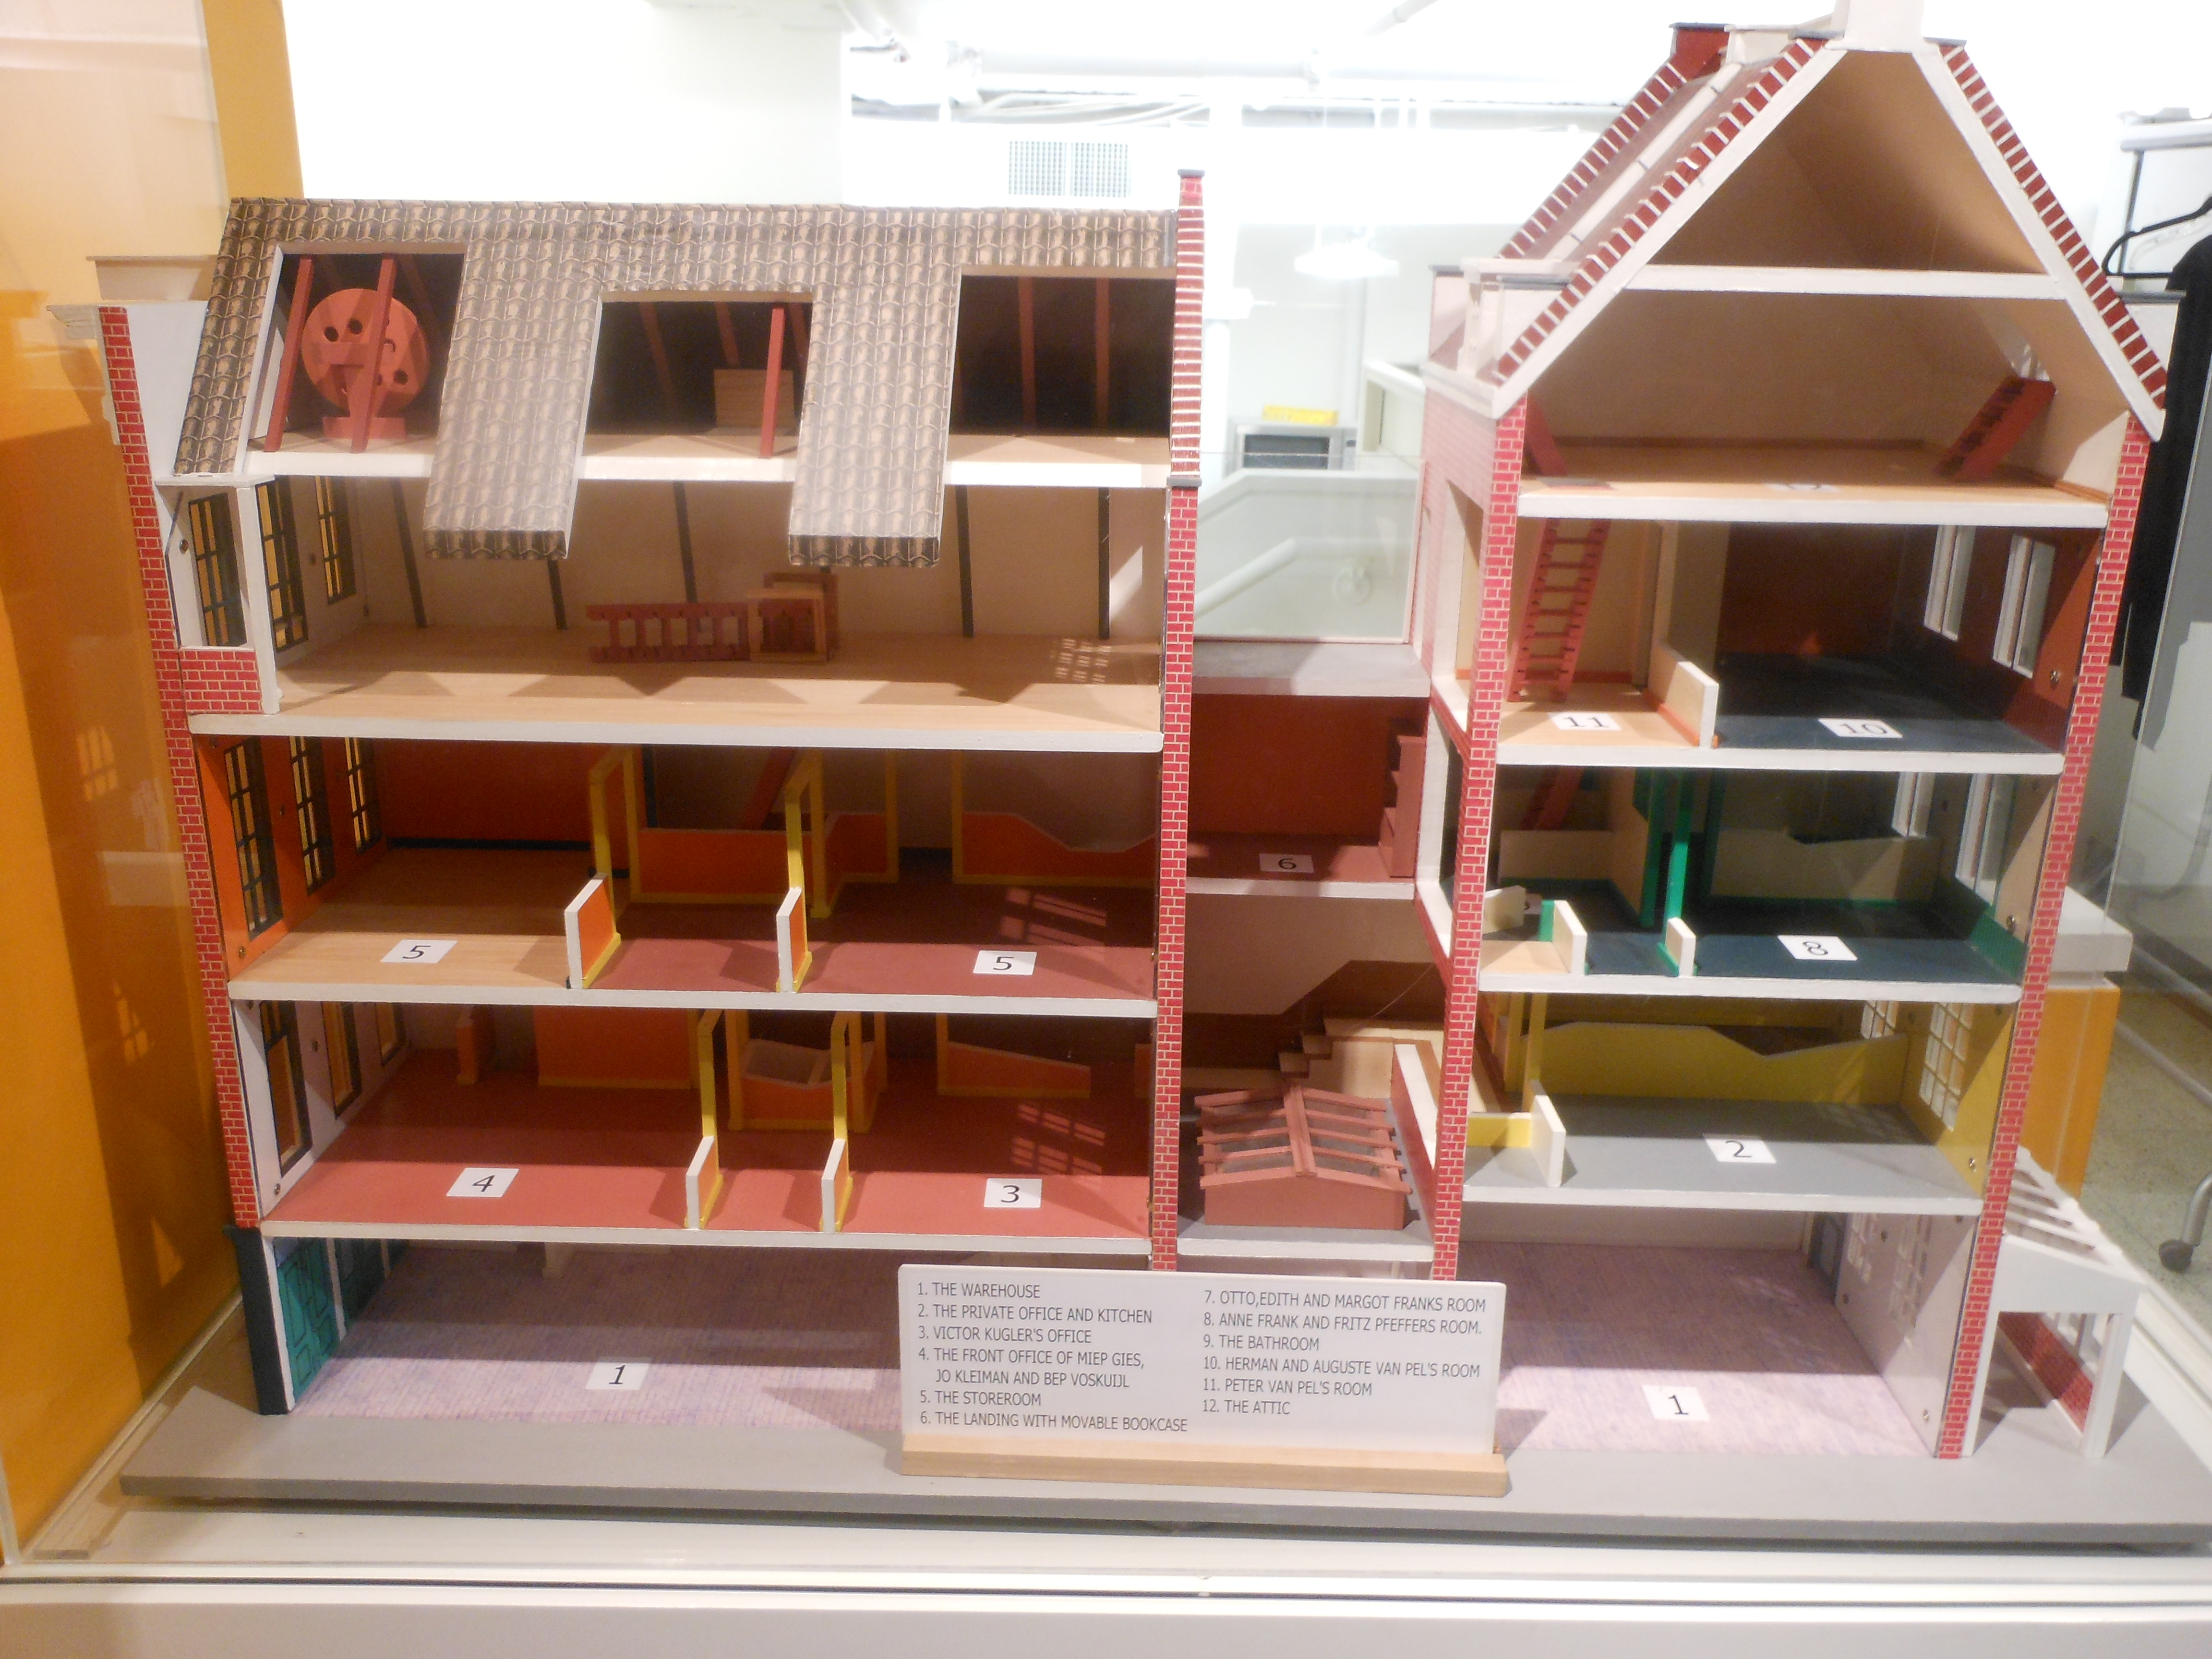 Anne Frank Model House, by Alexisrael [Public domain], via Wikimedia Commons. Creative Commons Attribution-Share Alike 3.0 Unported license. Wikimedia commons.